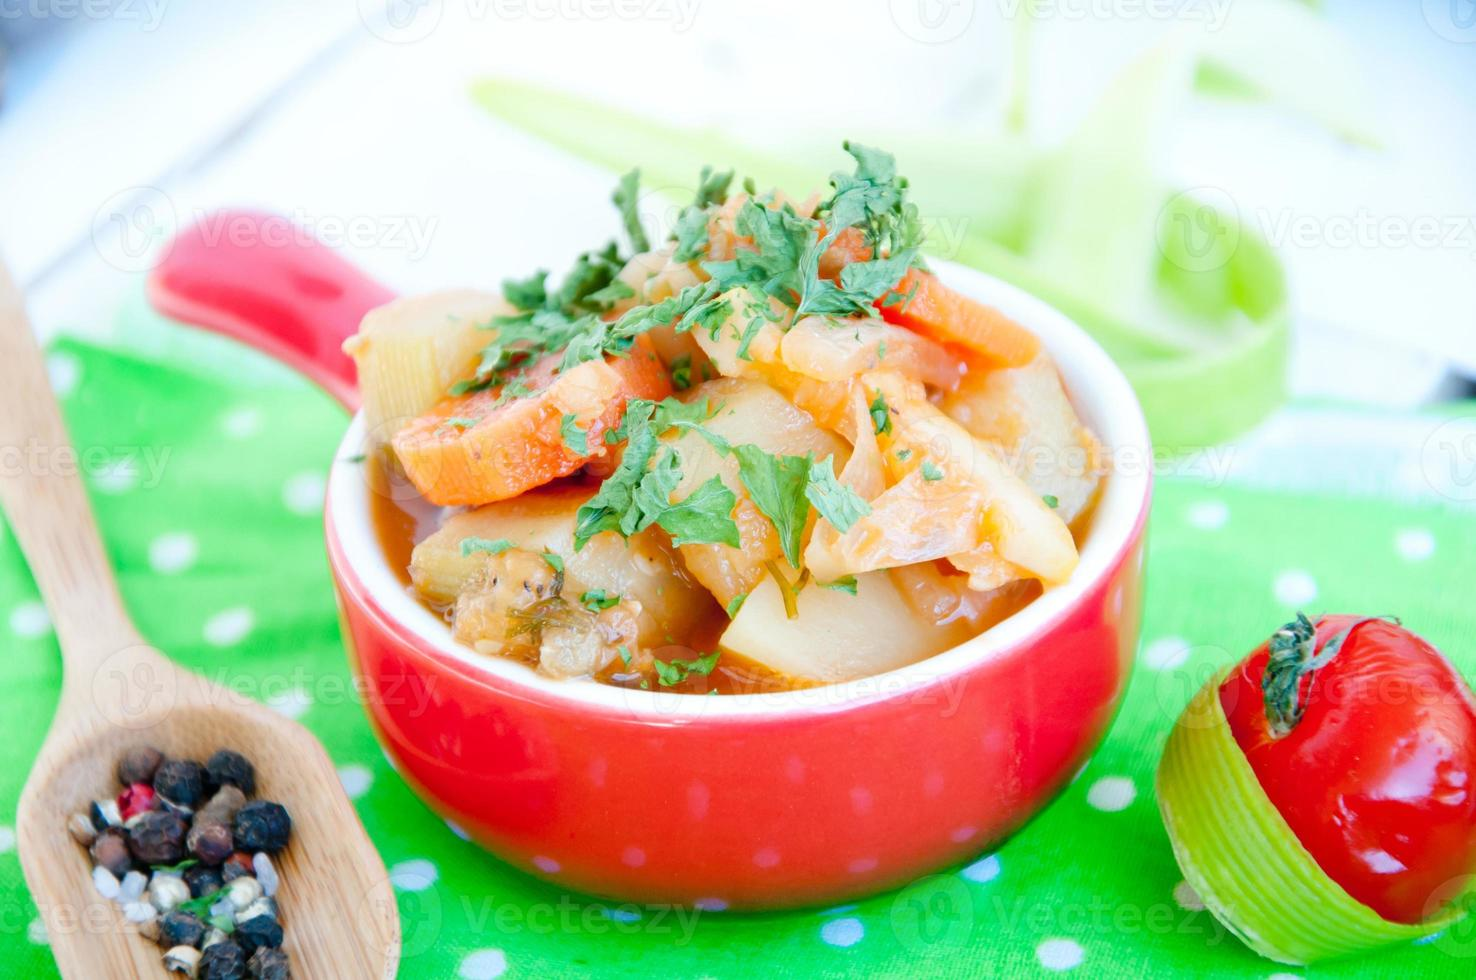 Delicious lentil and vegetable stew photo